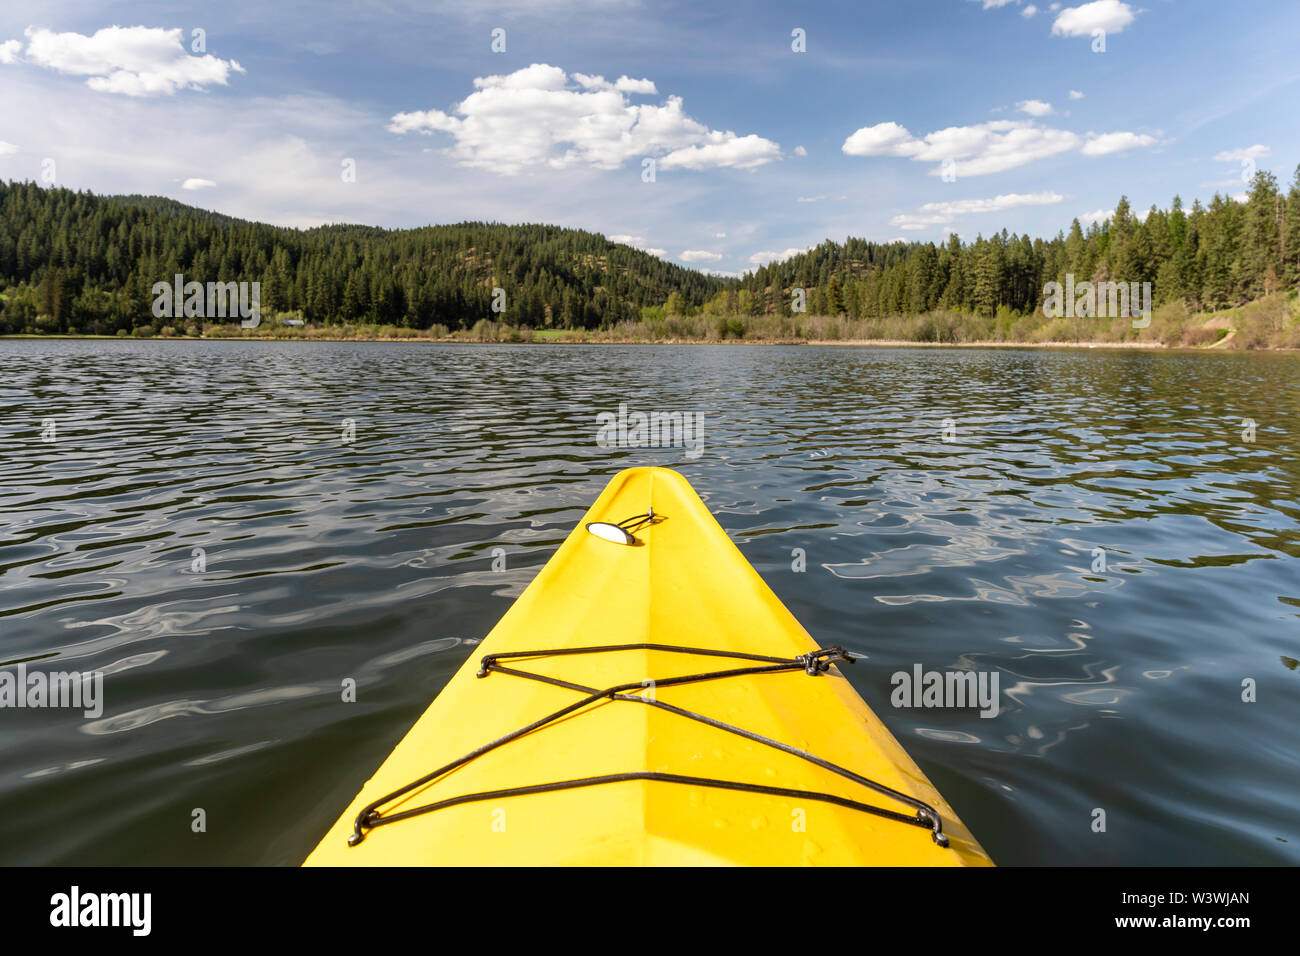 Kayaking in a yellow boat on Couer D'Alene Lake on a sunny spring day - Stock Image